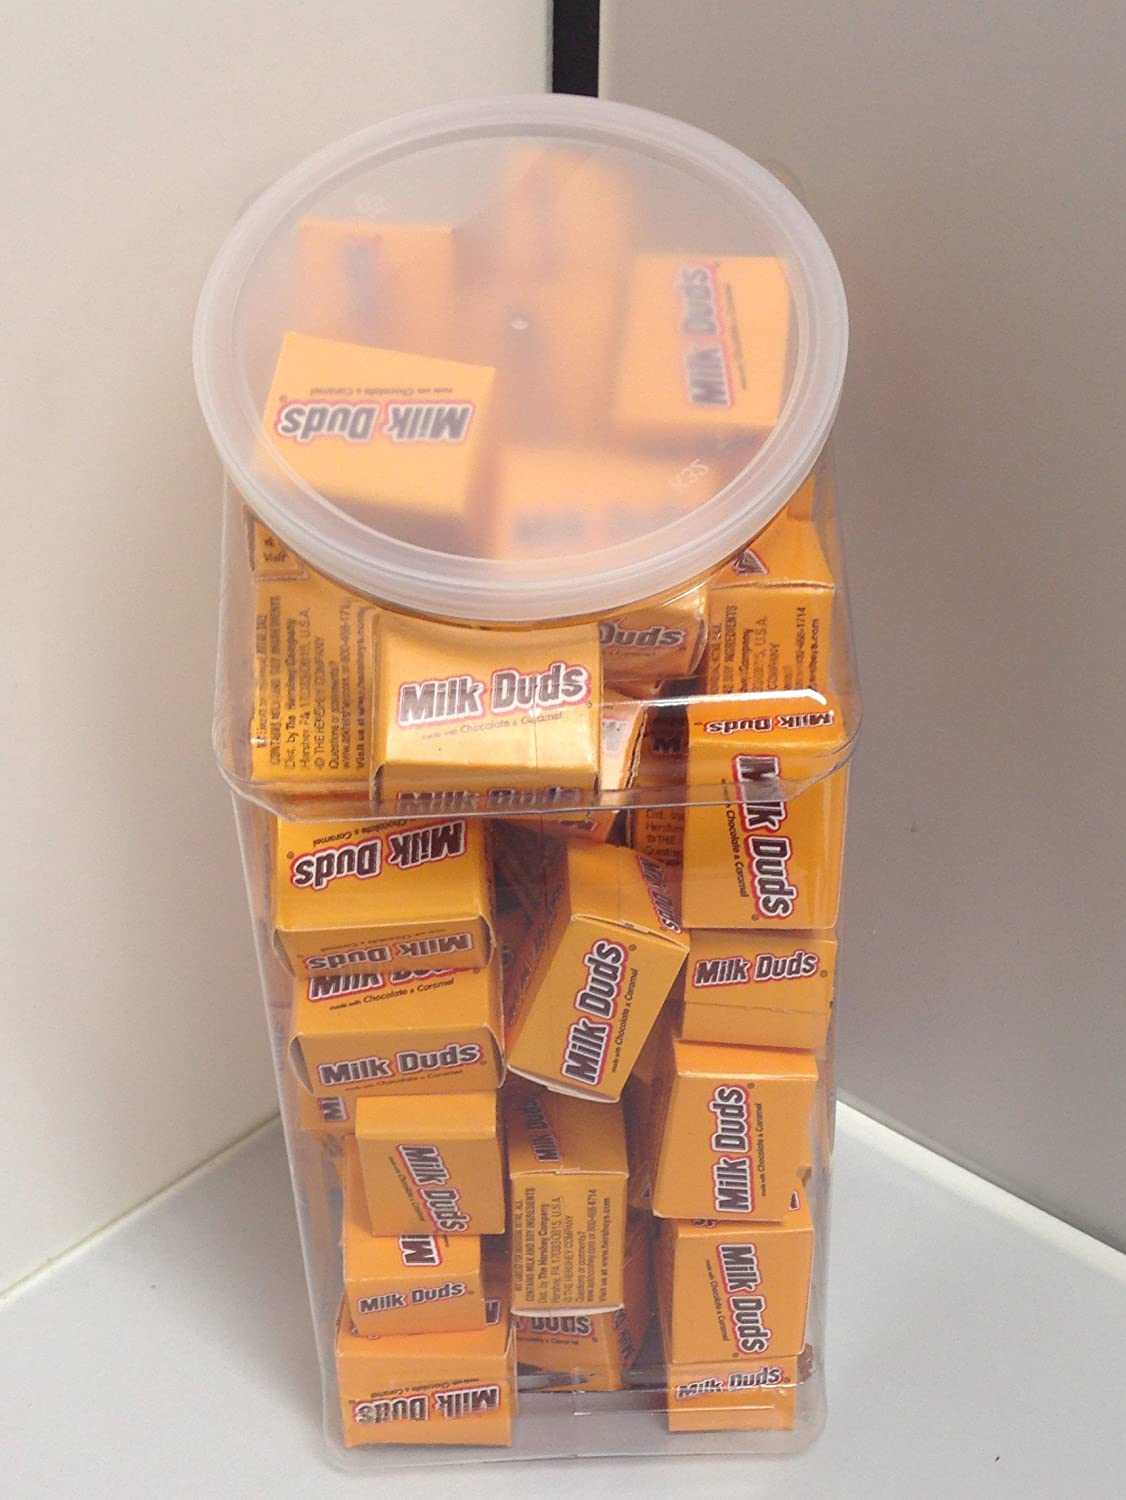 Milk Duds Mini 80 Ct. Jar - These are for me!